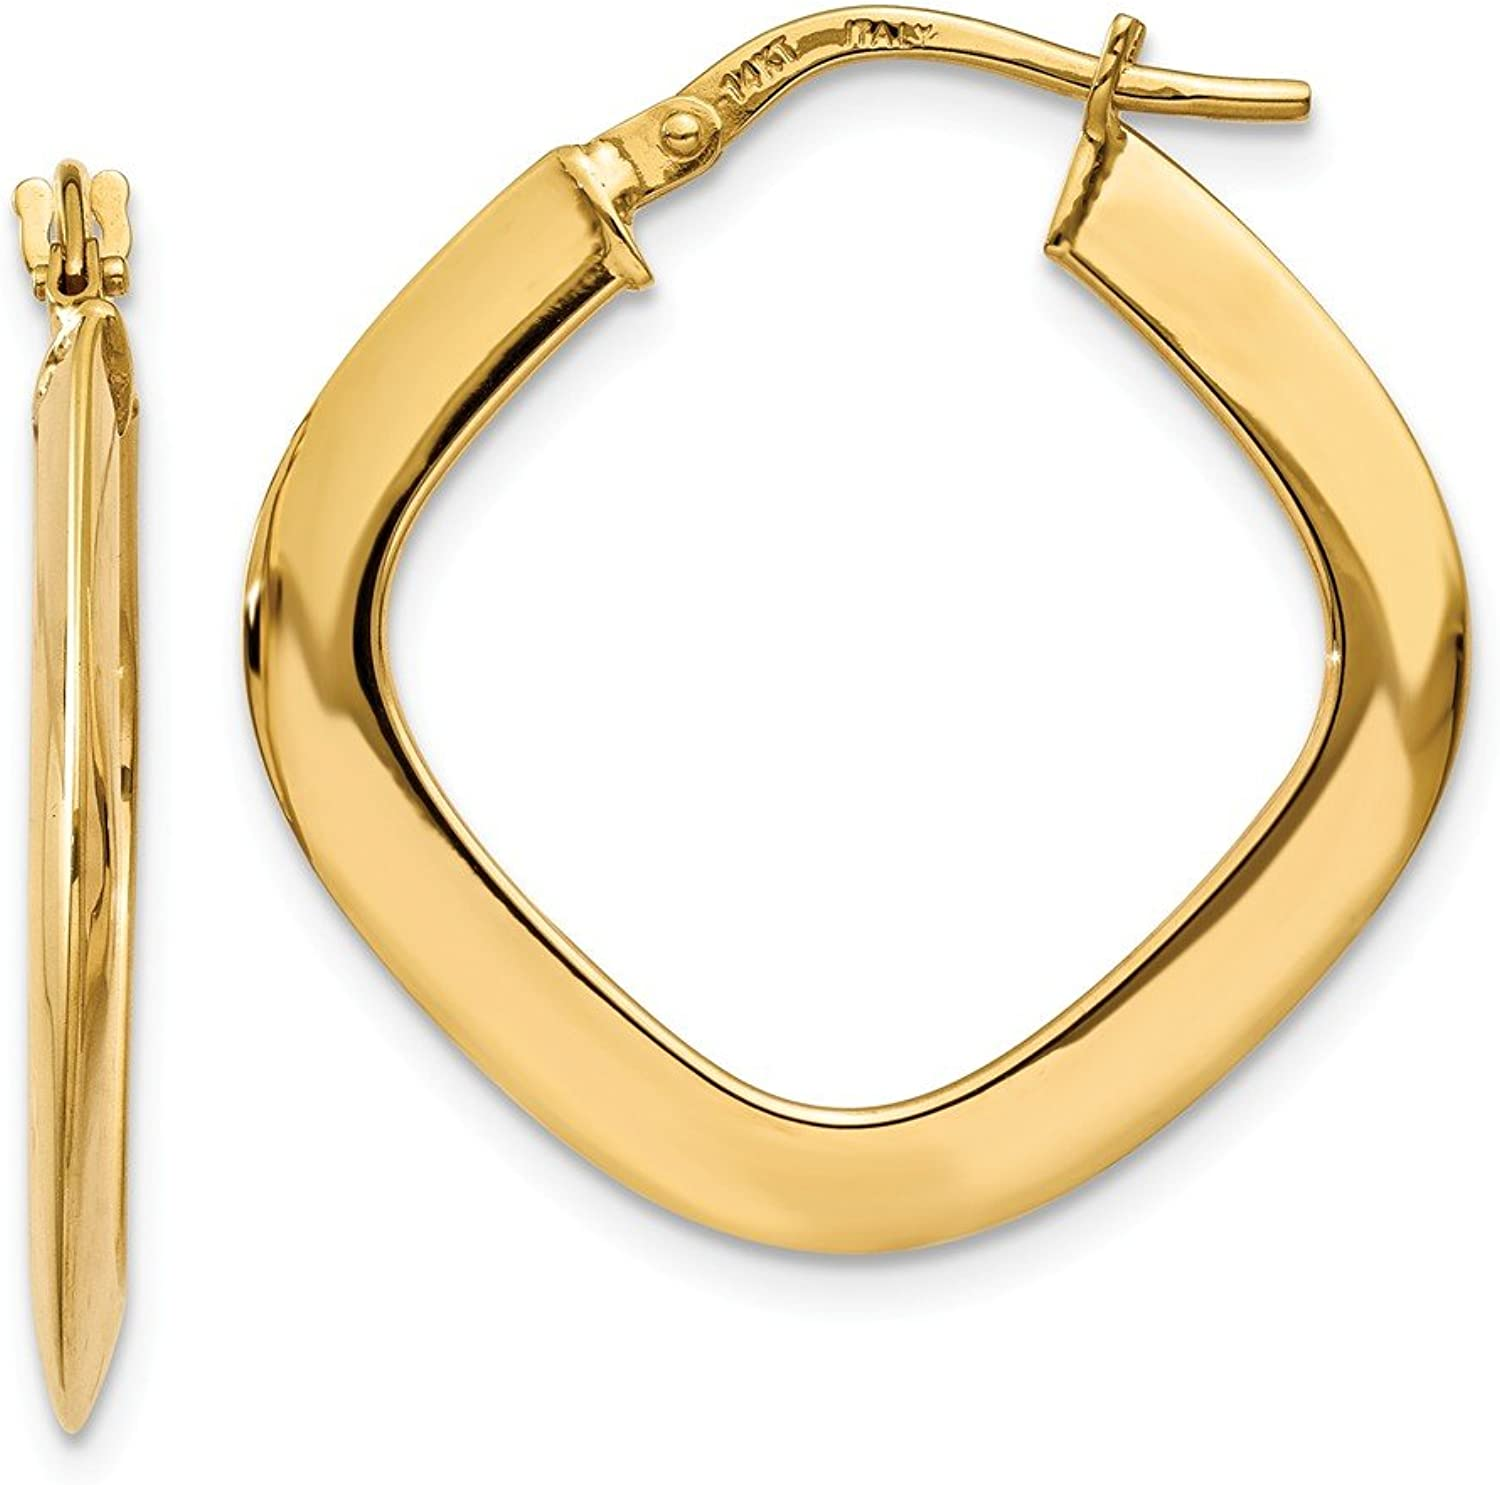 Beautiful Yellow gold 14K Yellowgold 14K Tapered Square Hoop Earrings